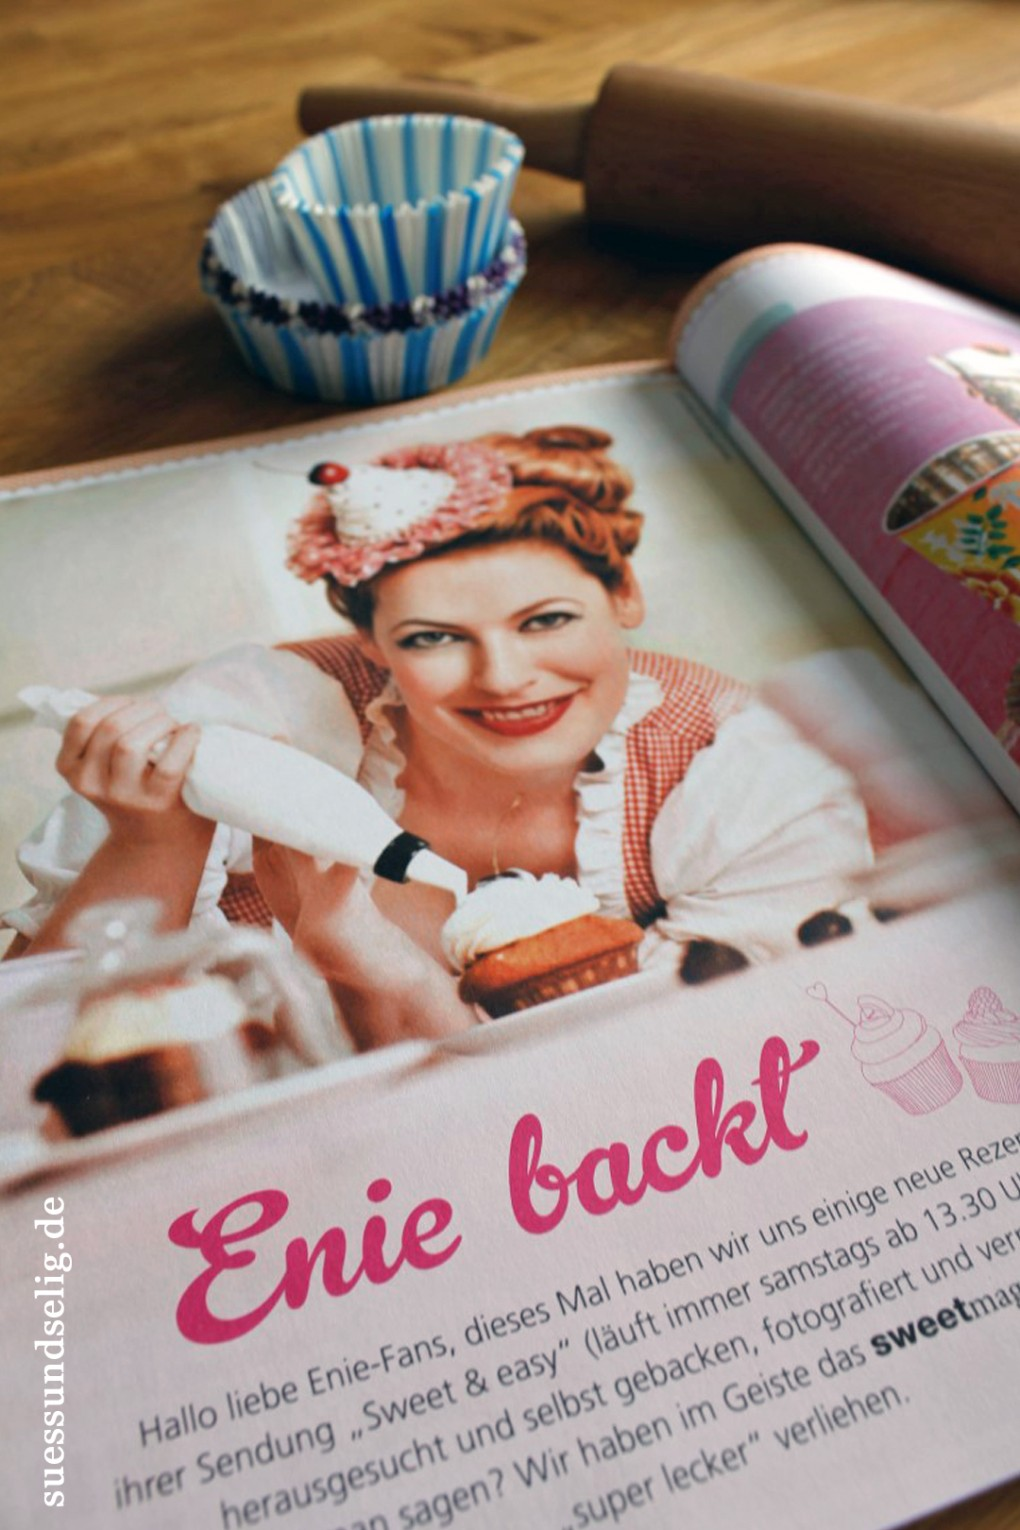 Enie backt in Sweet mag